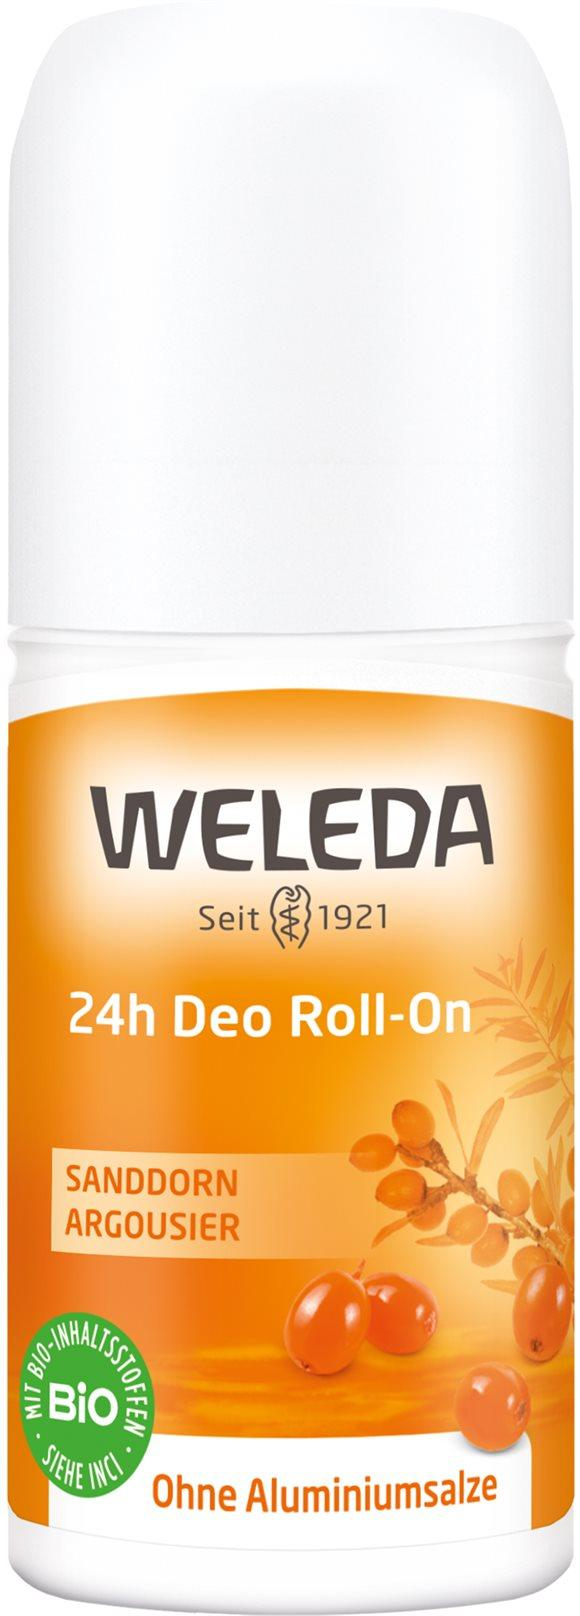 WELEDA Sanddorn 24h Deo Roll on 50 ml